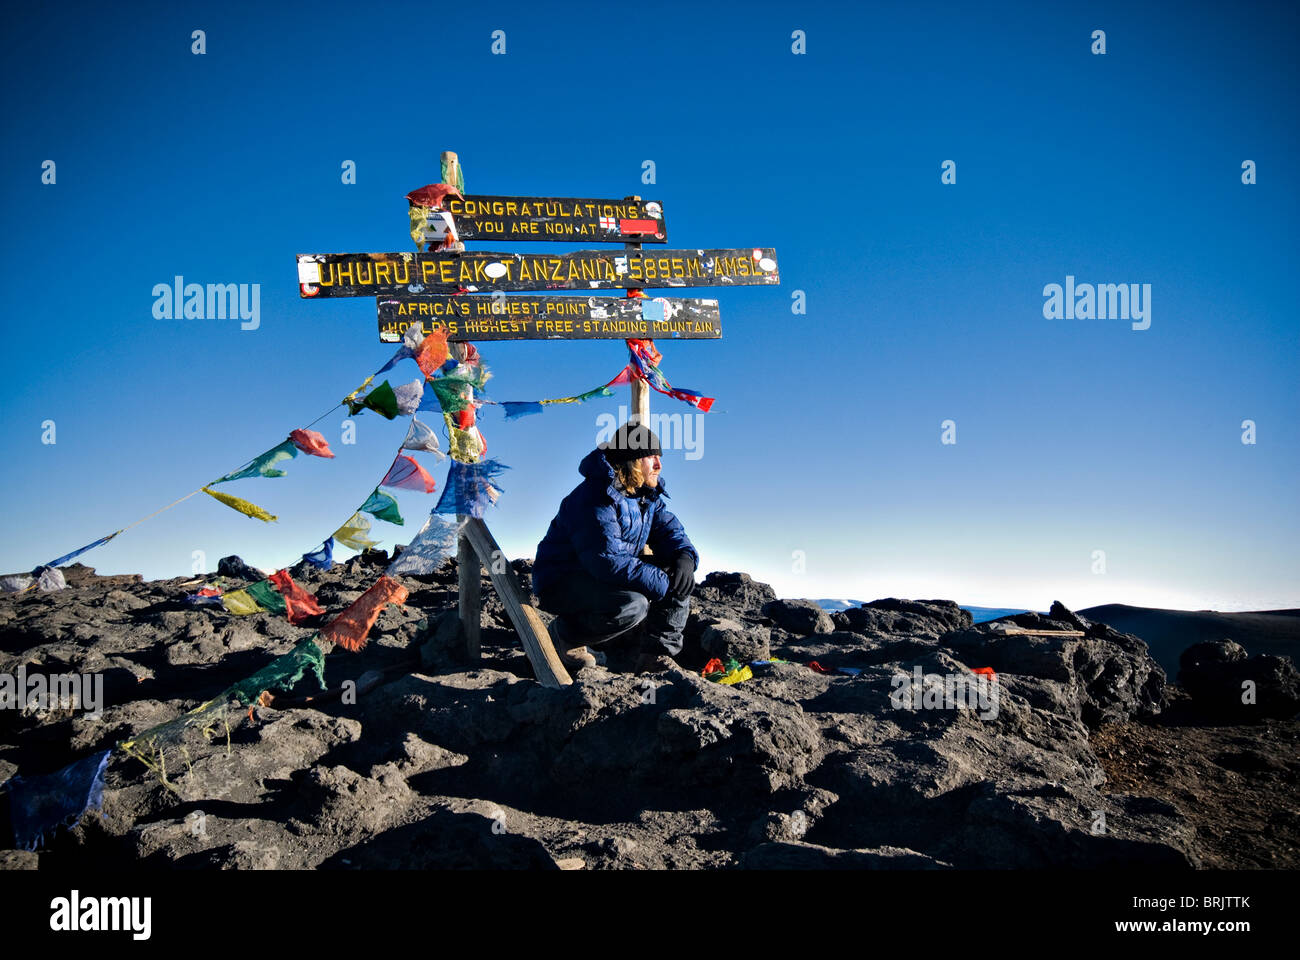 A young man reflects on the summit of Mt. Kilimanjaro, Tanzania, Africa as the sun rises. - Stock Image